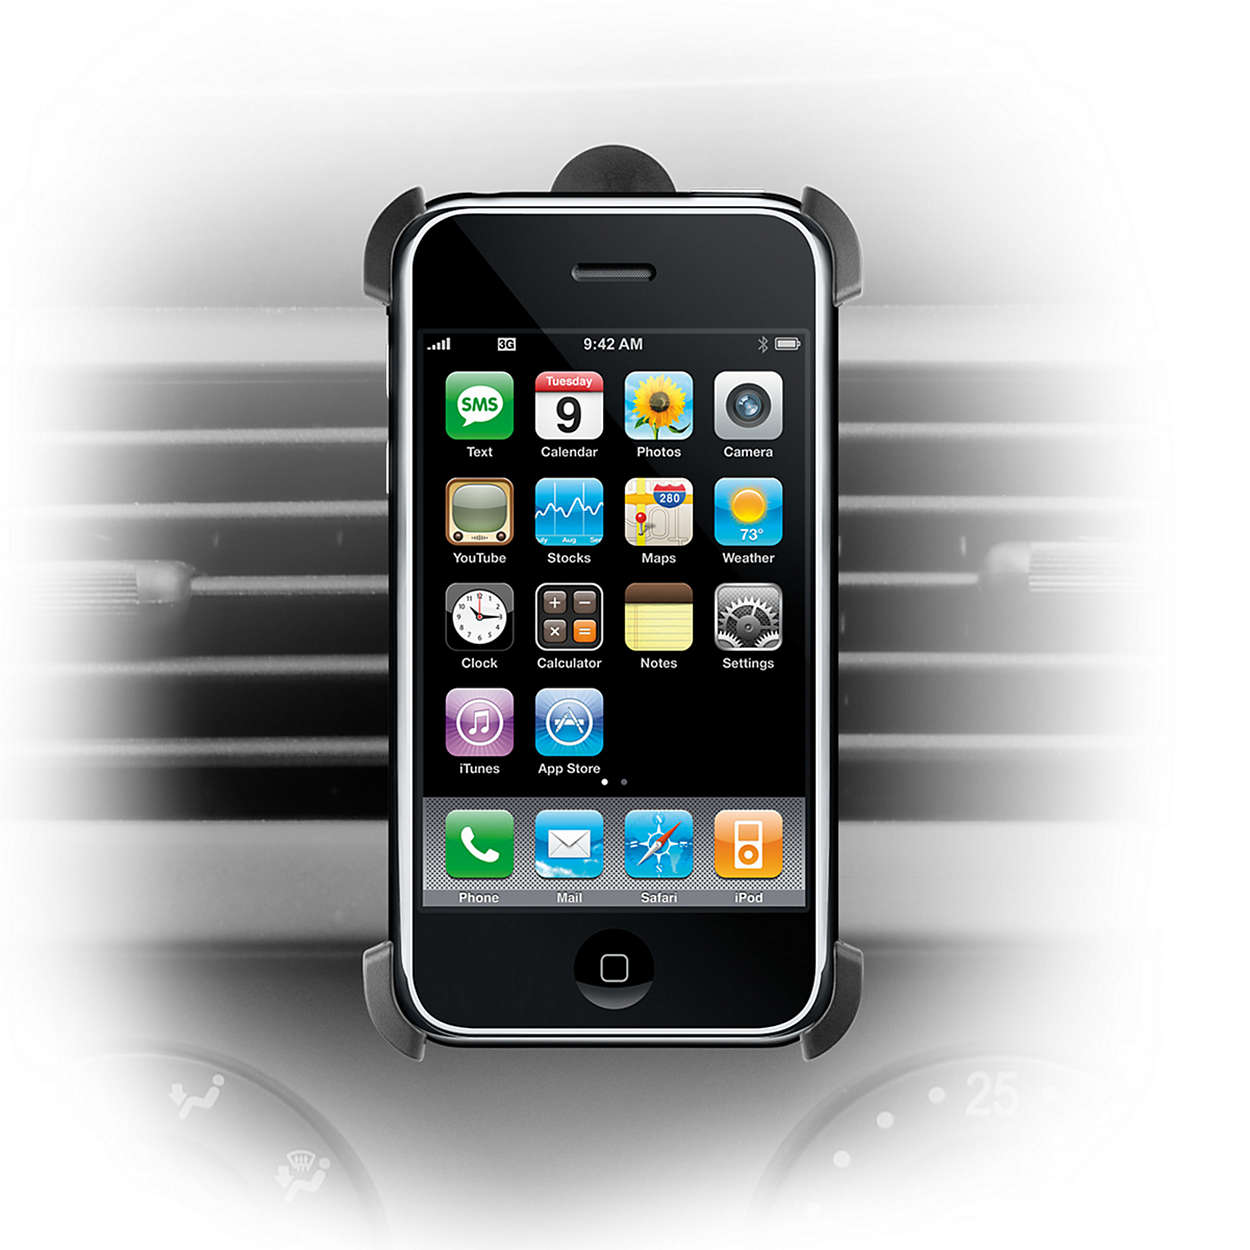 Mount your iPhone in your car